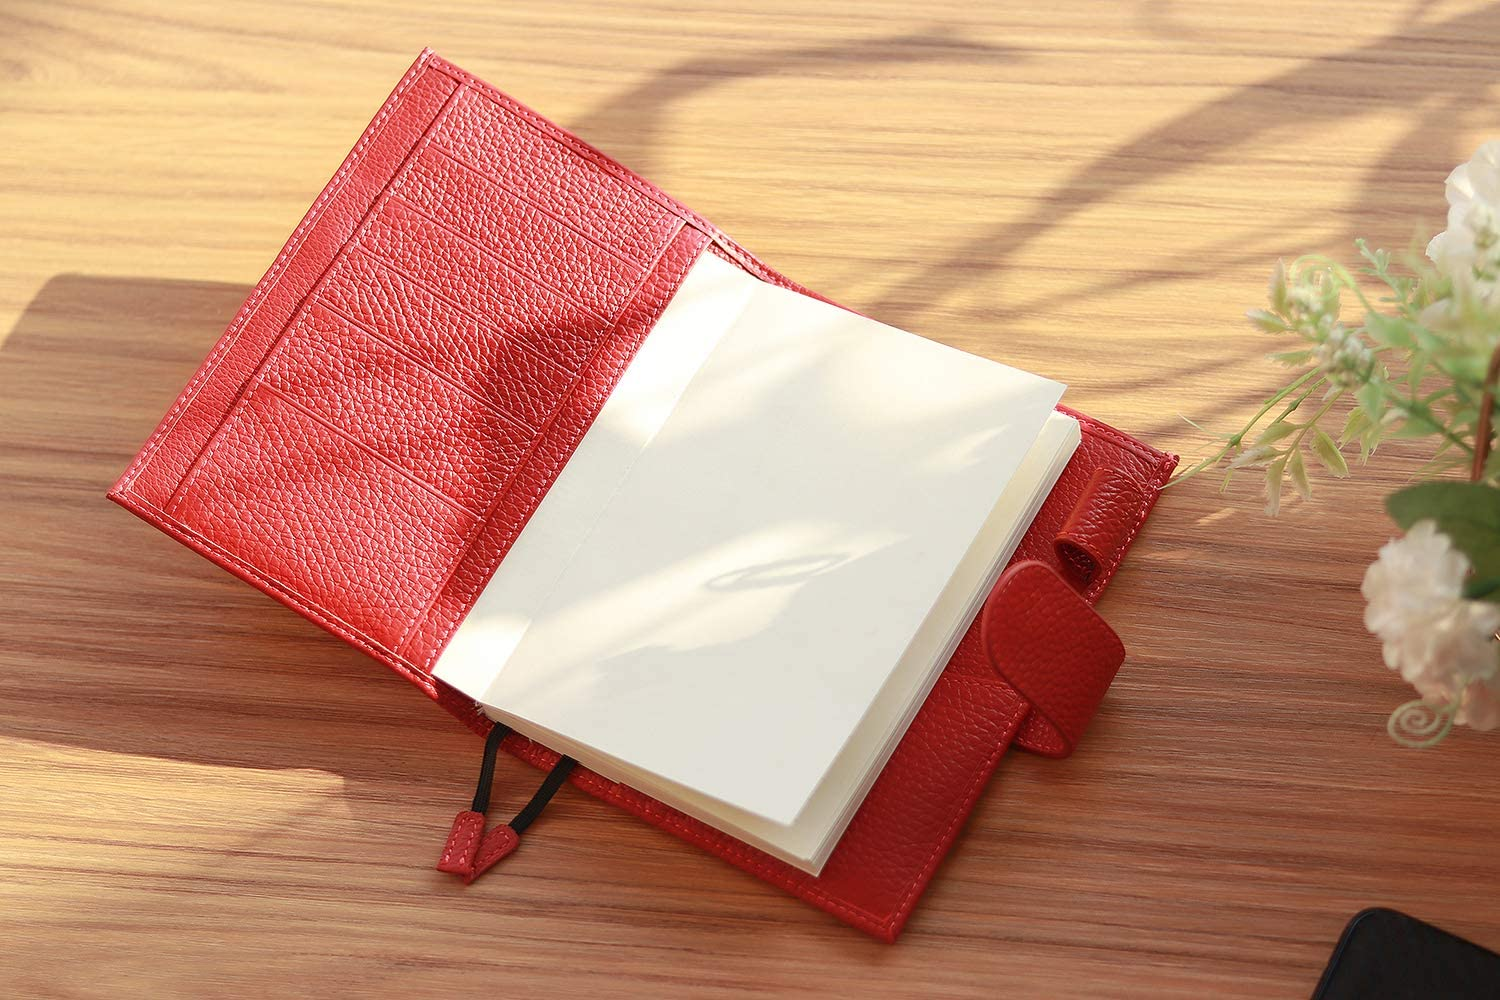 Stalogy A6 Notebook Cover with Pen Loop Moterm Leather Cover for A6 Hobonichi with Card Slots and Back Pockets A6, Red Leather Midori MD